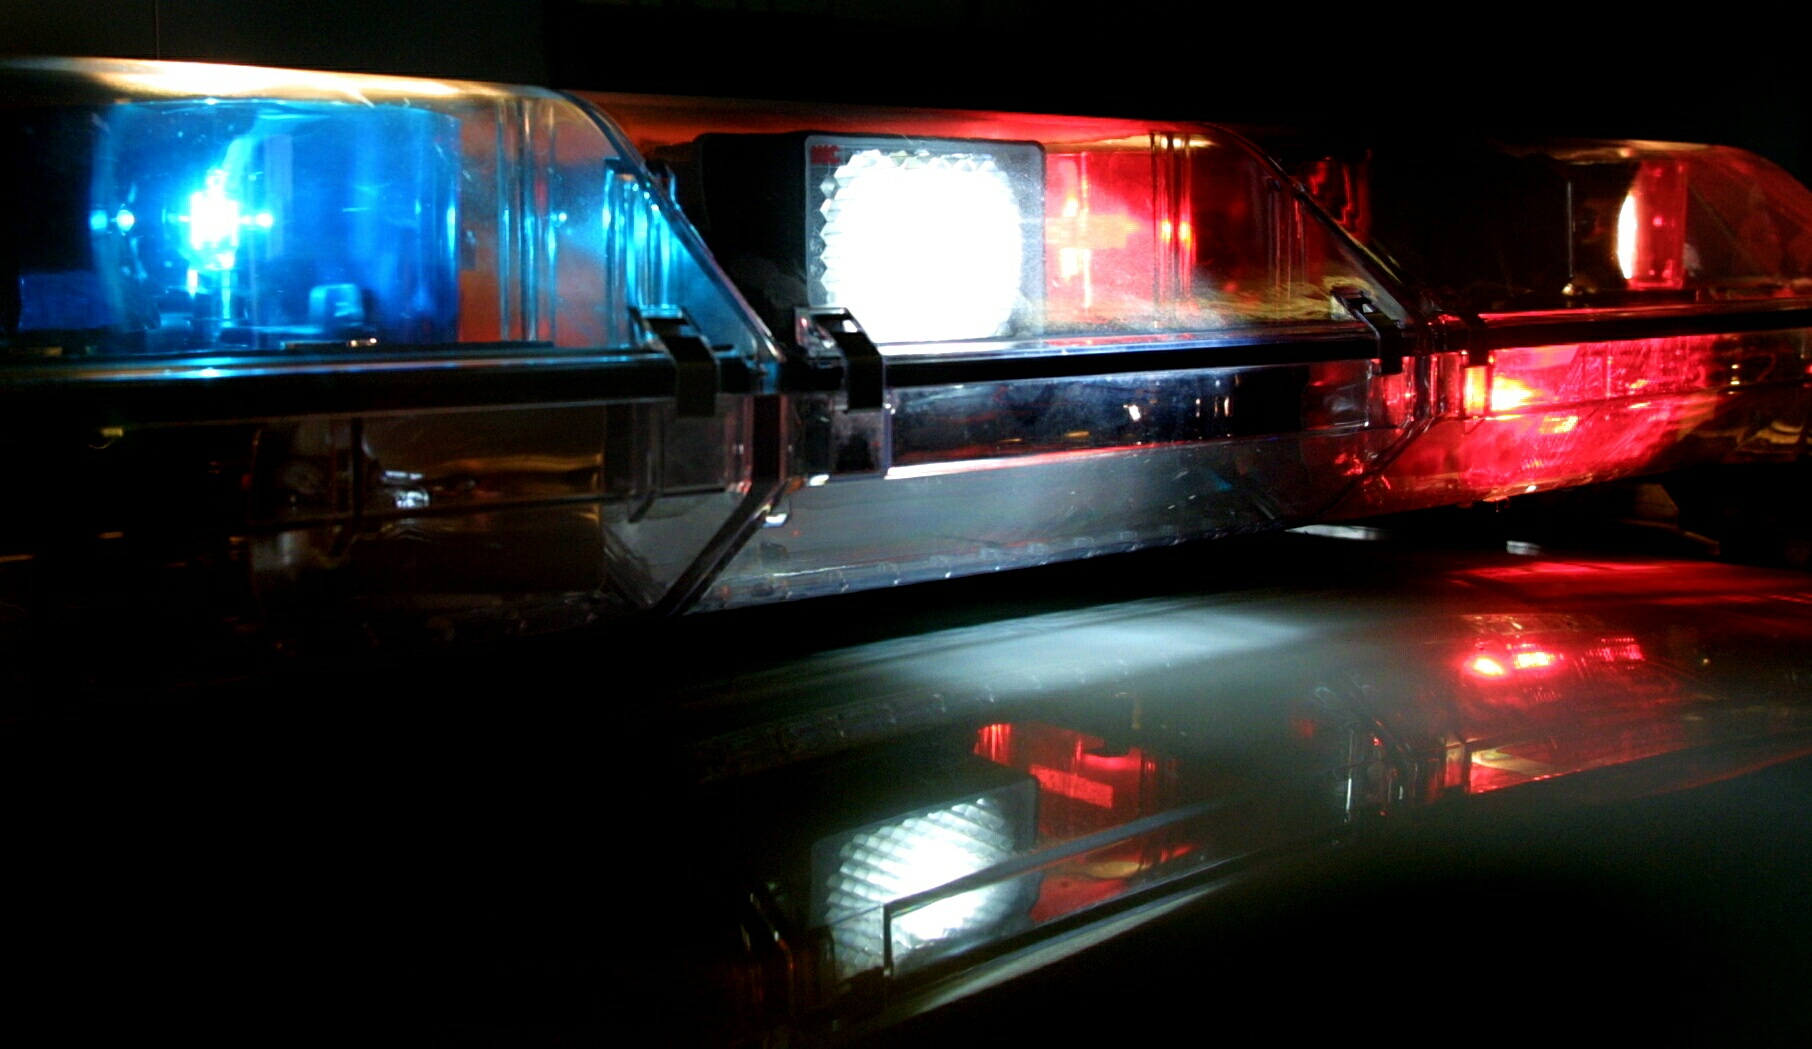 Pedestrian killed in early Thursday morning motor vehicle accident